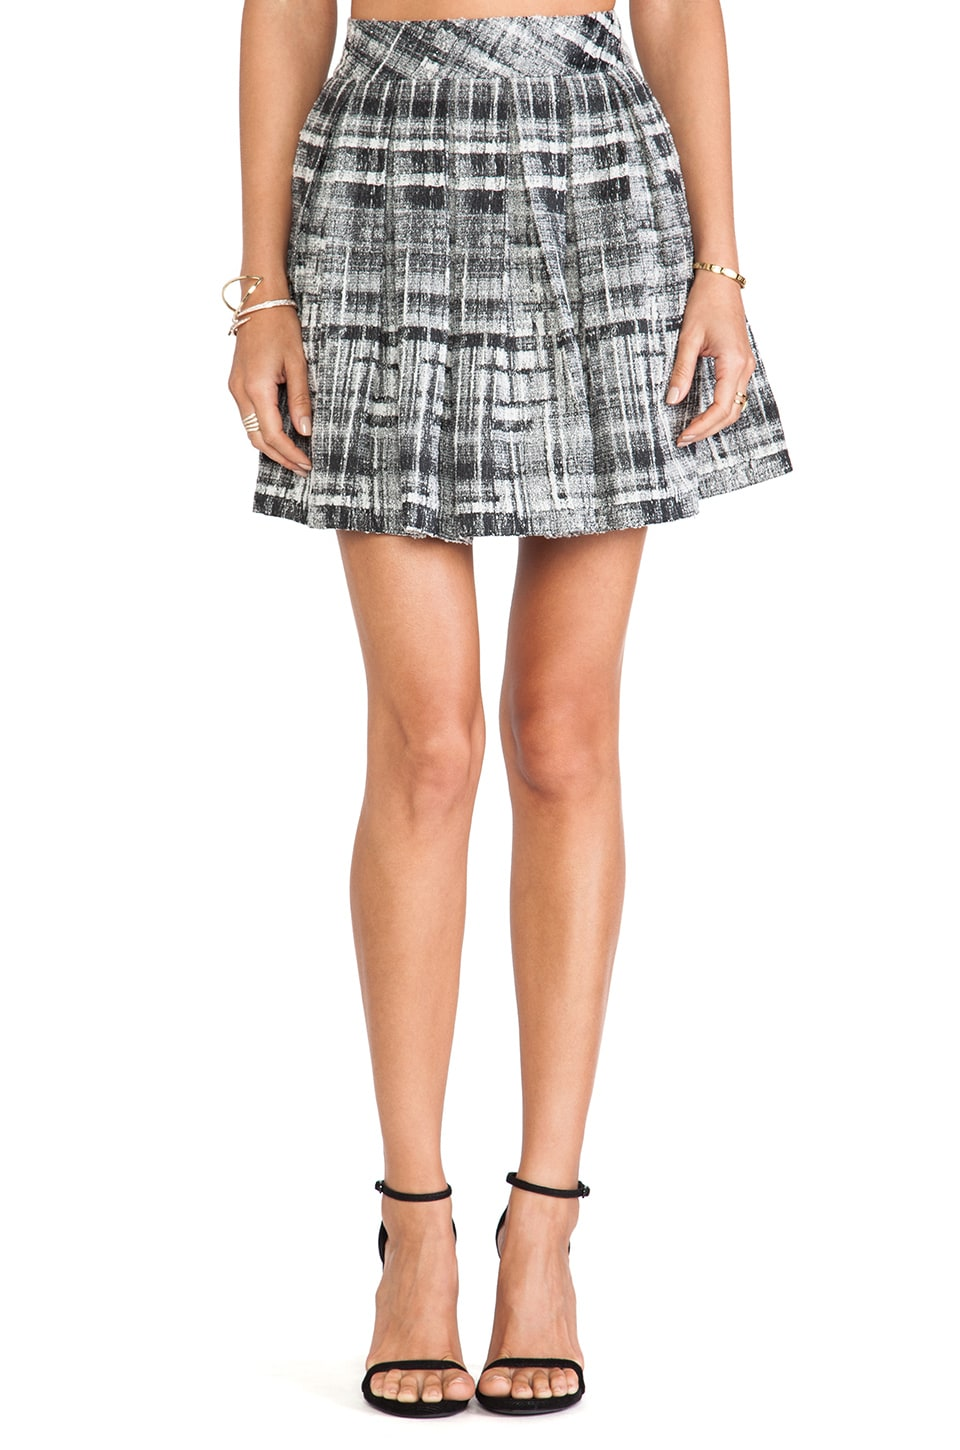 Alice + Olivia Kayla Box Pleat Skirt in Black & White